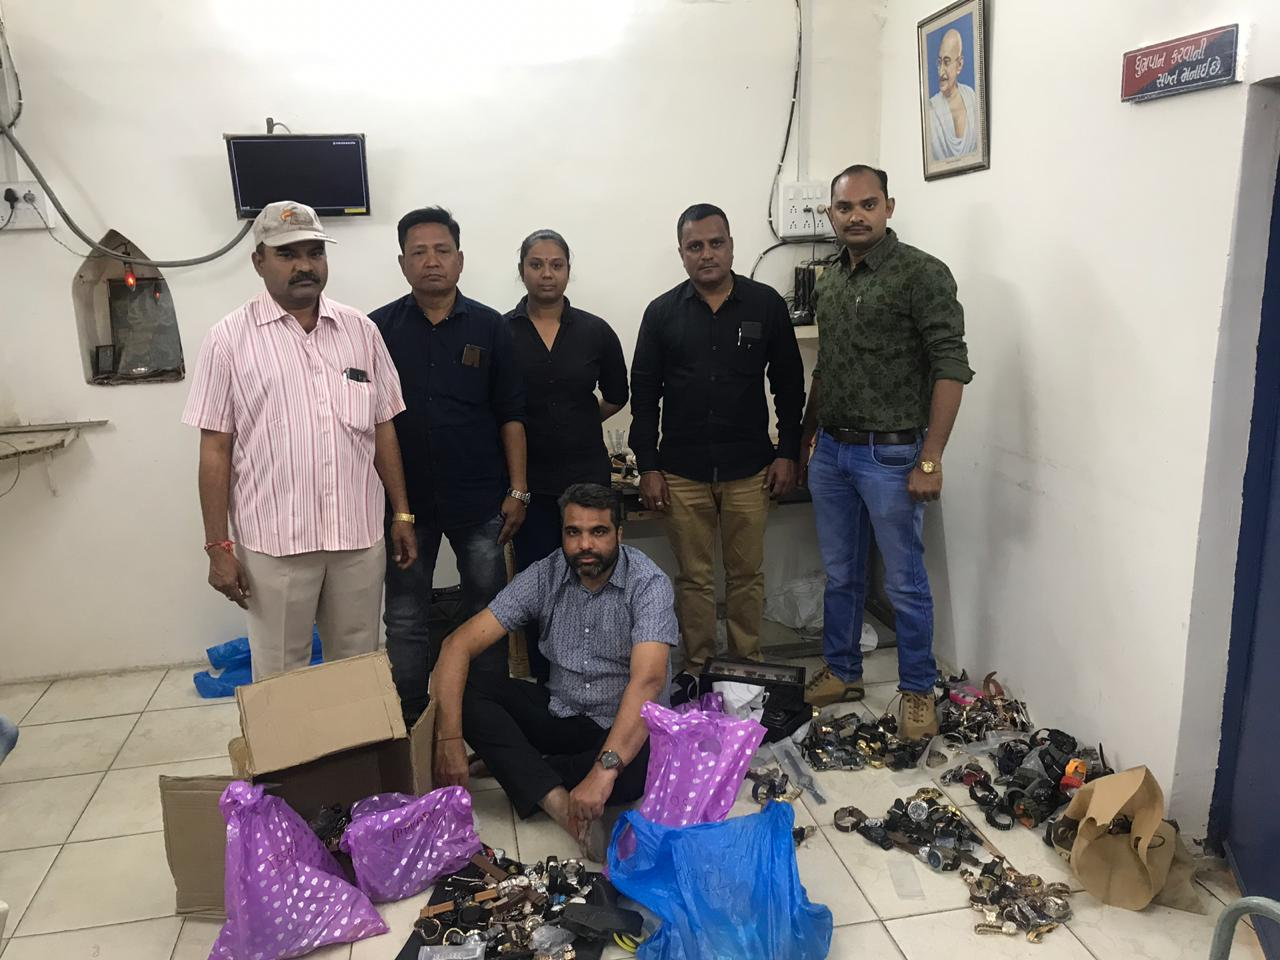 Vadodara crime branch arrested one for selling duplicate watches of branded companies